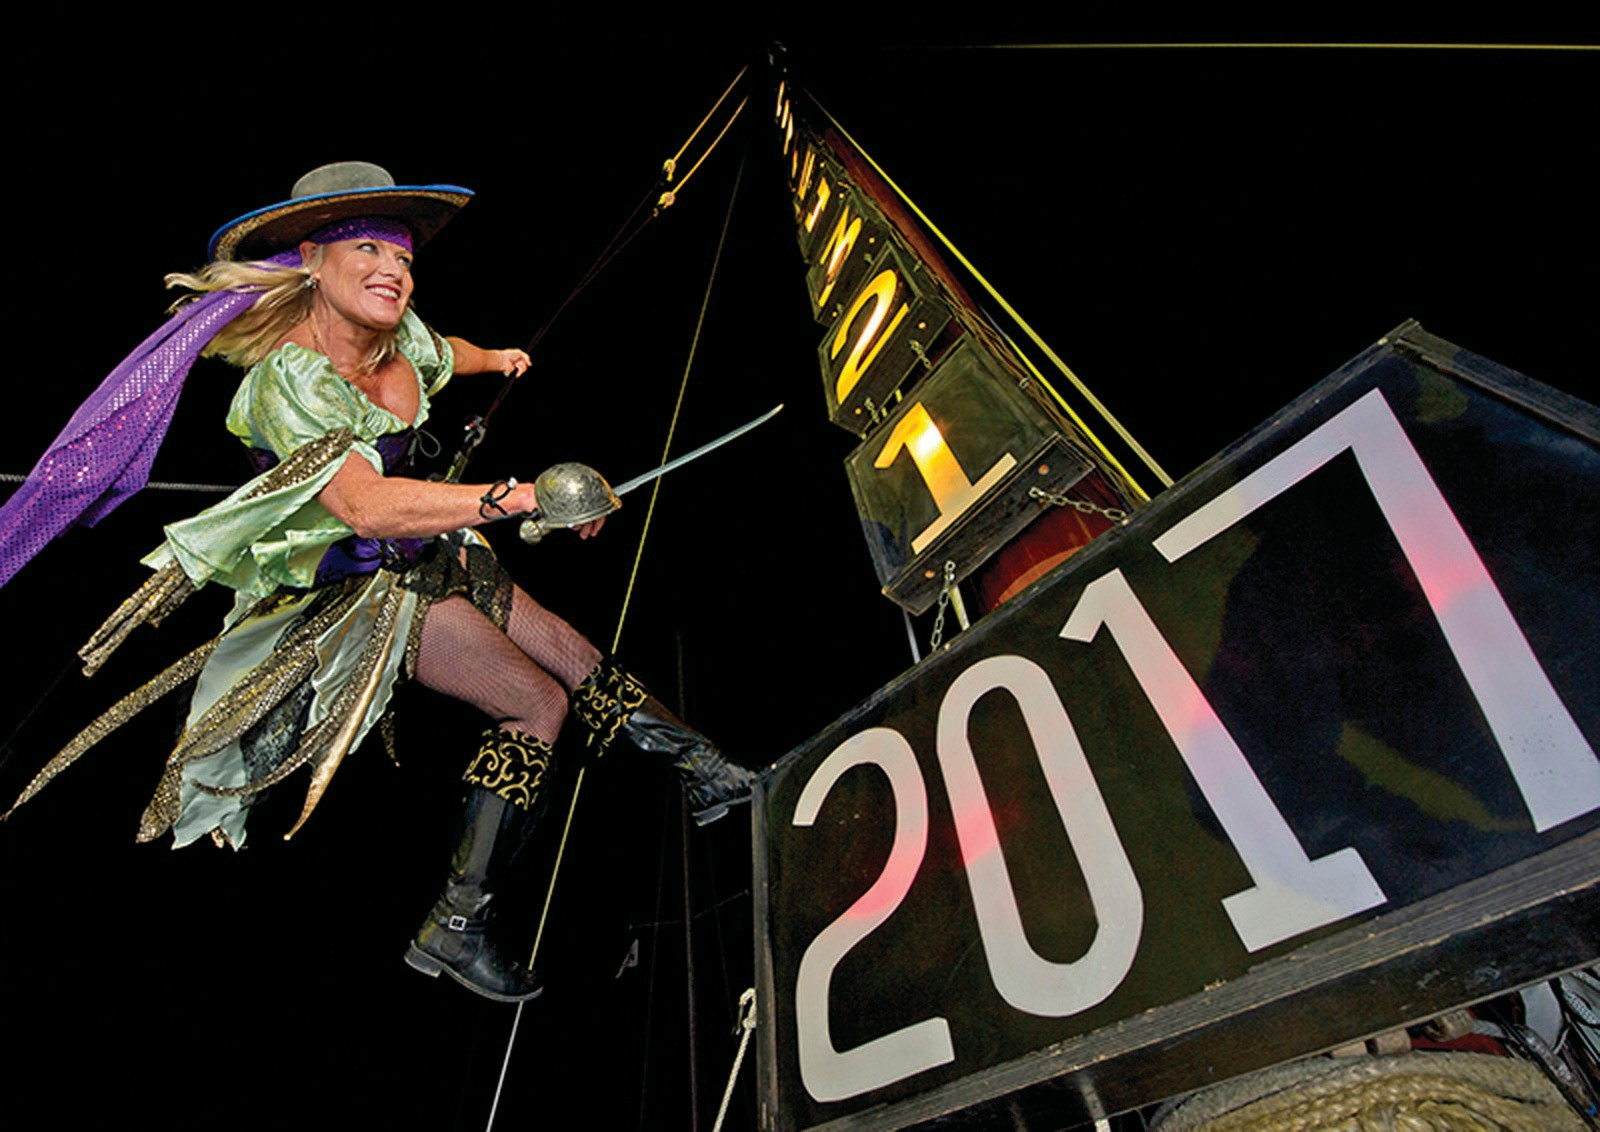 Evalena Worthington, costumed as a pirate wench, practices being lowered from the mast of the sailing vessel America 2.0 outside the Schooner Wharf Bar late Friday, Dec. 30, 2016, in Key West. The Pirate Wench Drop, set for New Year's Eve, is one of four distinct drops Key West offers to answer New York City's Times Square ball drop to mark the beginning of the New Year. ROB O'NEAL / FLORIDA KEYS NEWS BUREAU/HO